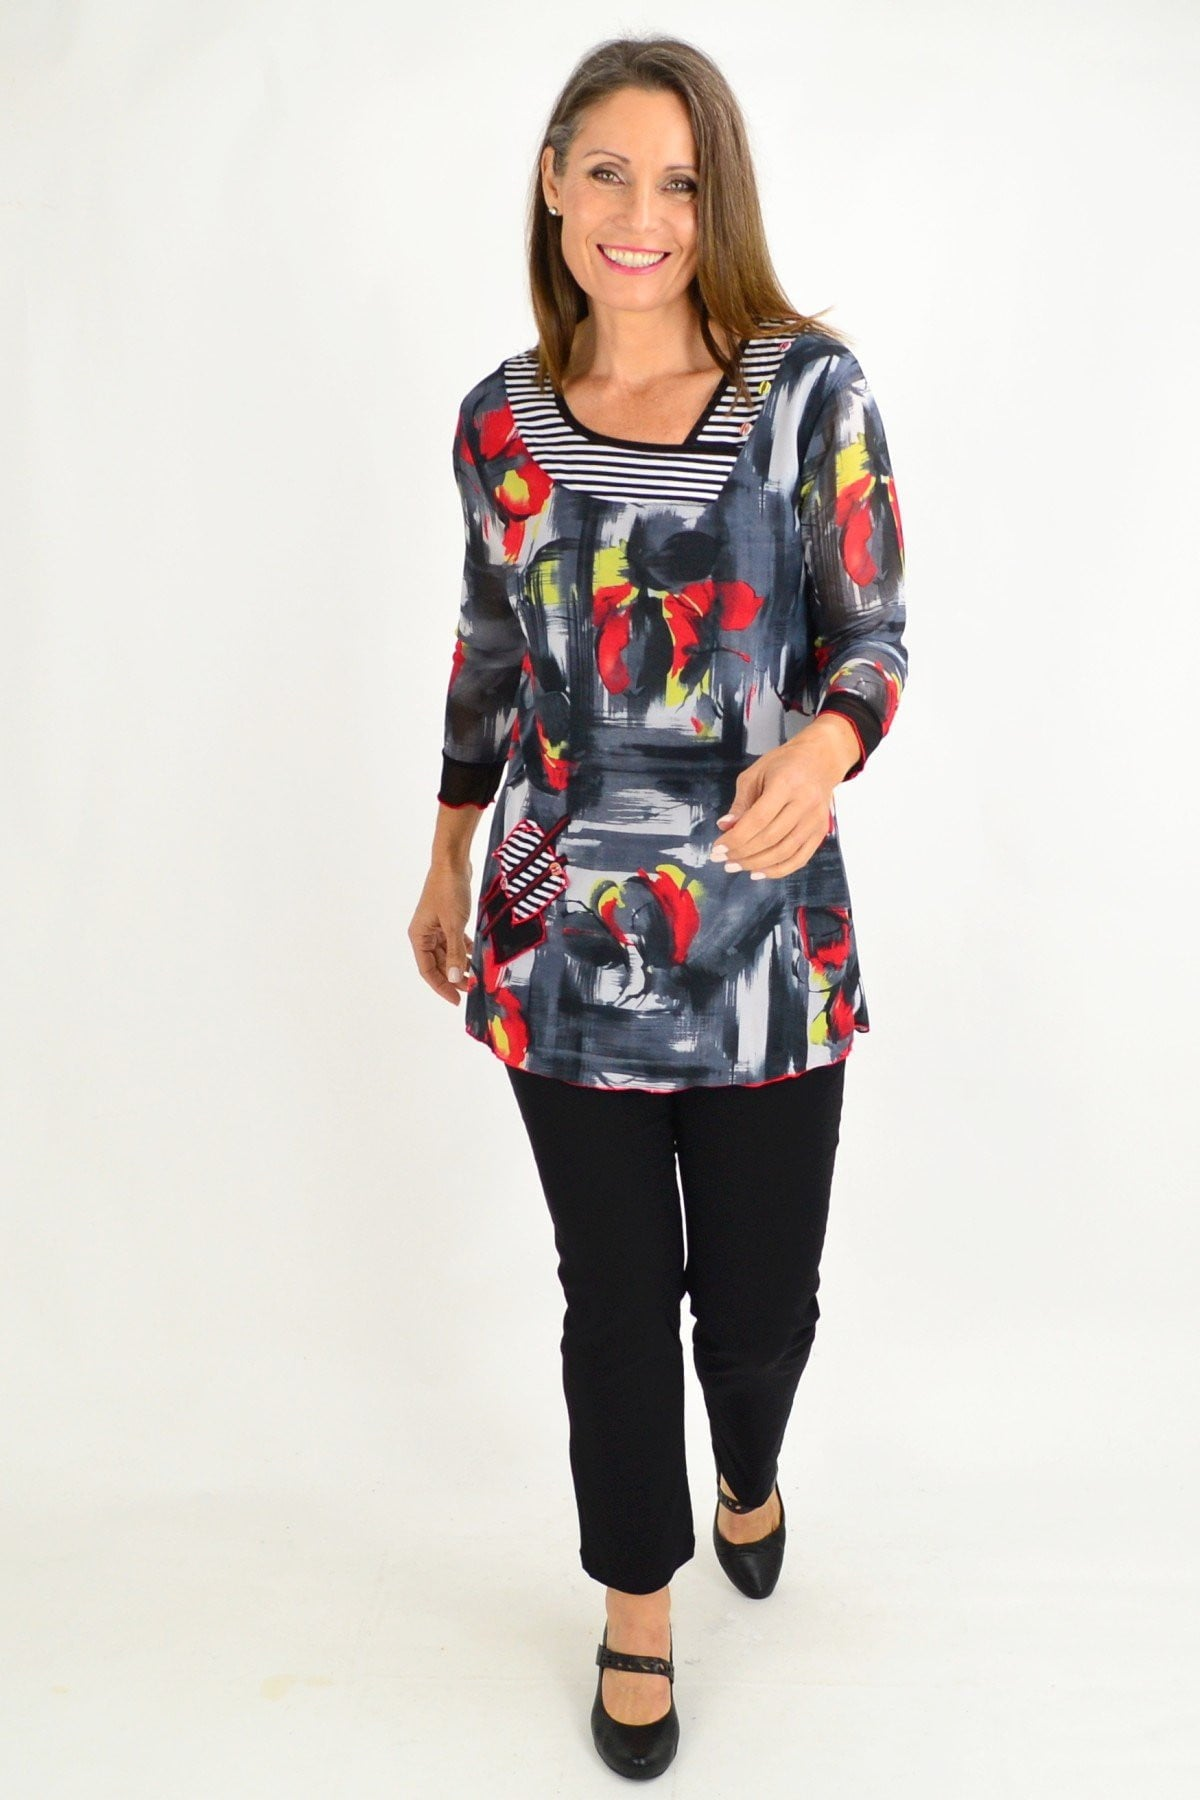 Rosemary floral Tunic Top | I Love Tunics | Tunic Tops | Tunic | Tunic Dresses  | womens clothing online